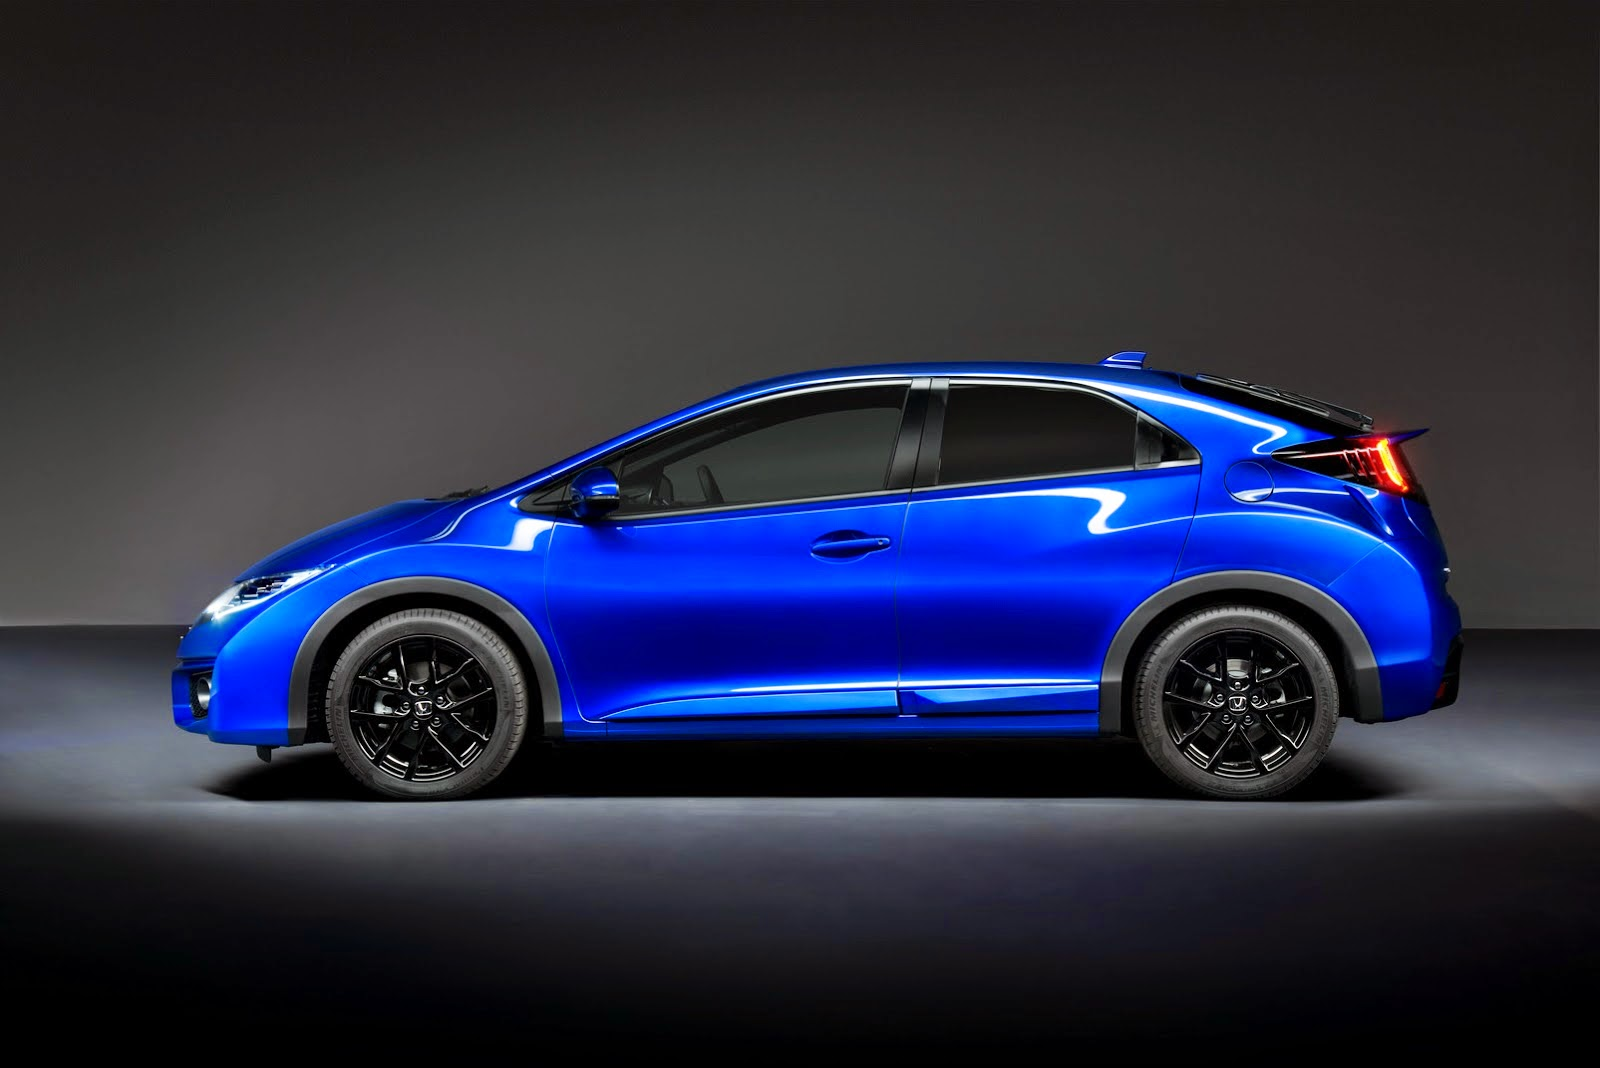 Honda Civic Sport Wallpaper Iphone: 2015 Honda Civic Power, Engine And Features